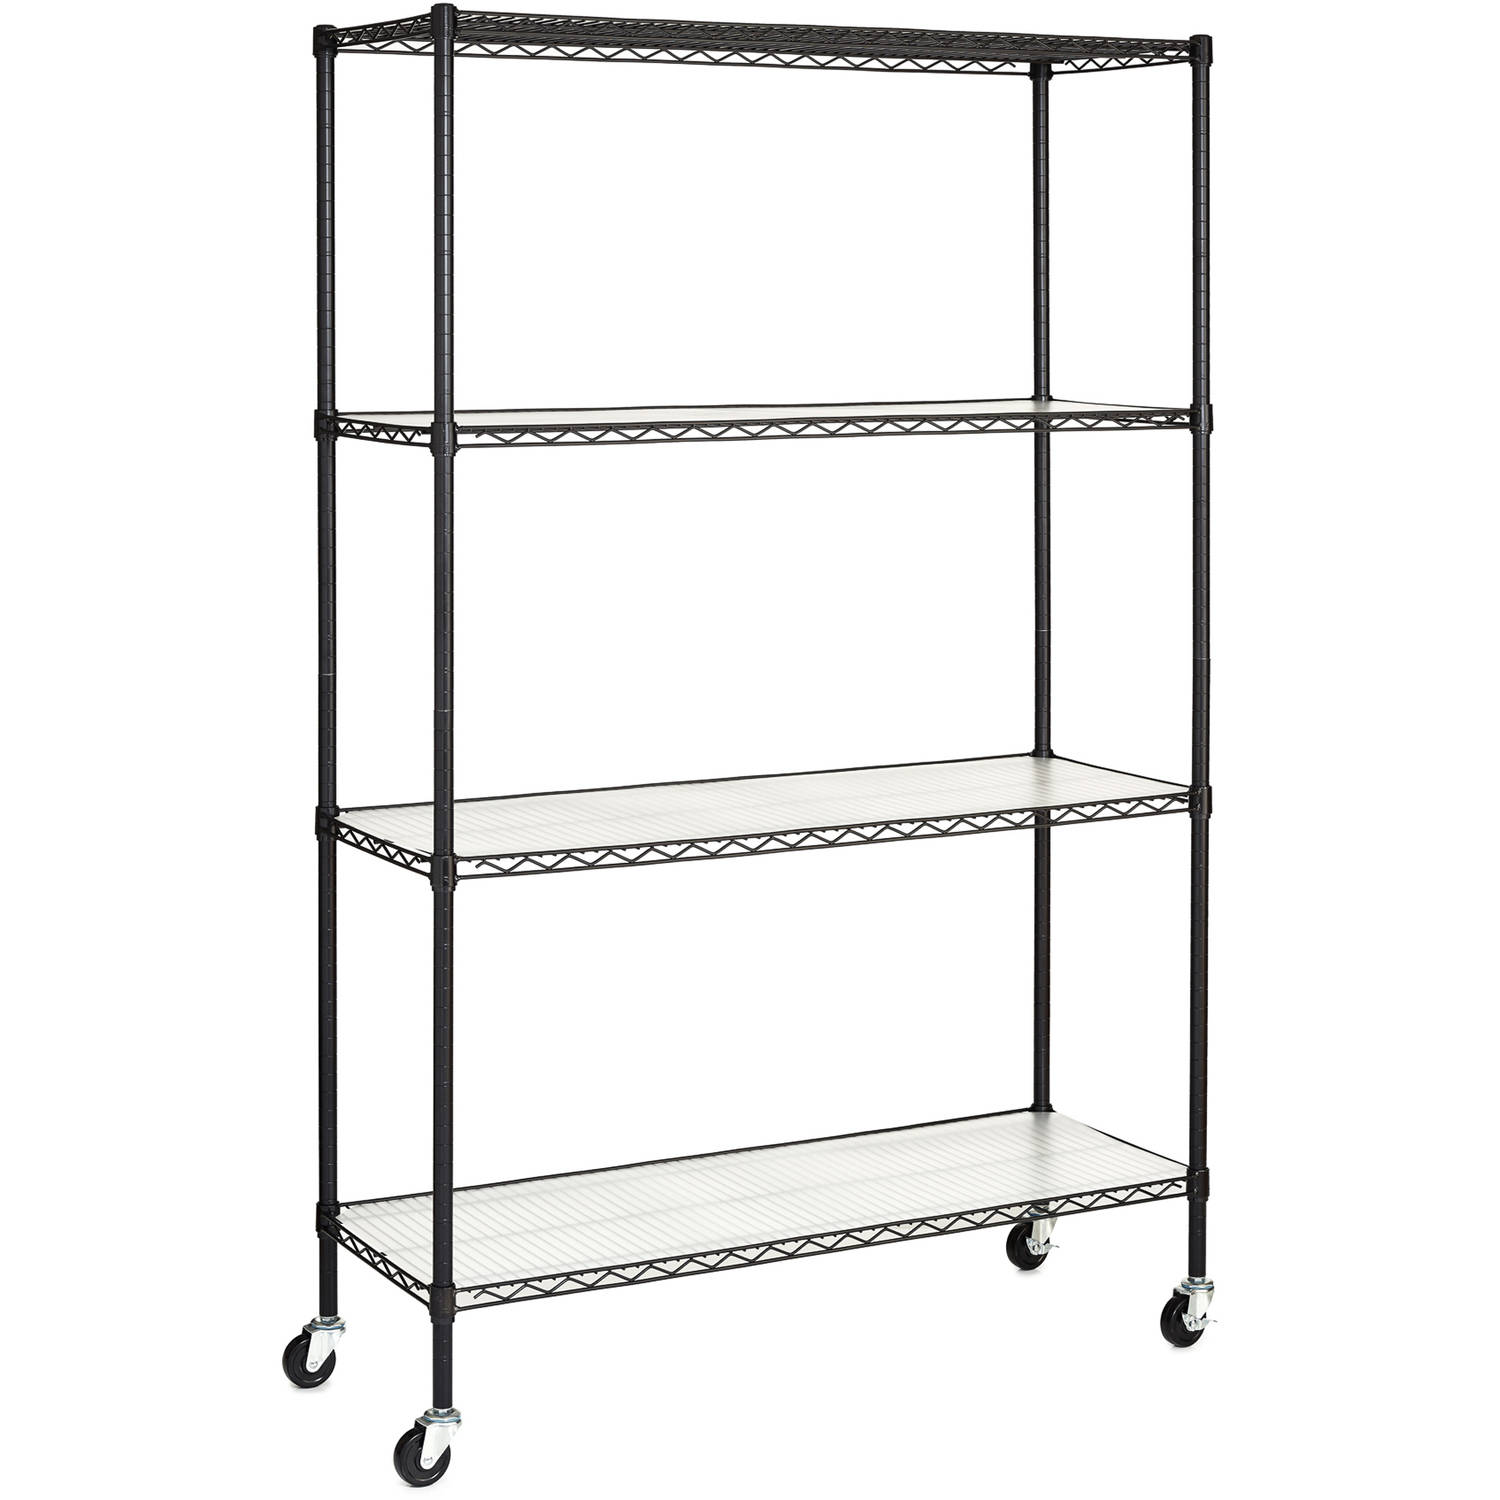 Hyper Tough 4 Shelf Commercial Grade Wire Shelving System With Bonus Liners And Casters Black